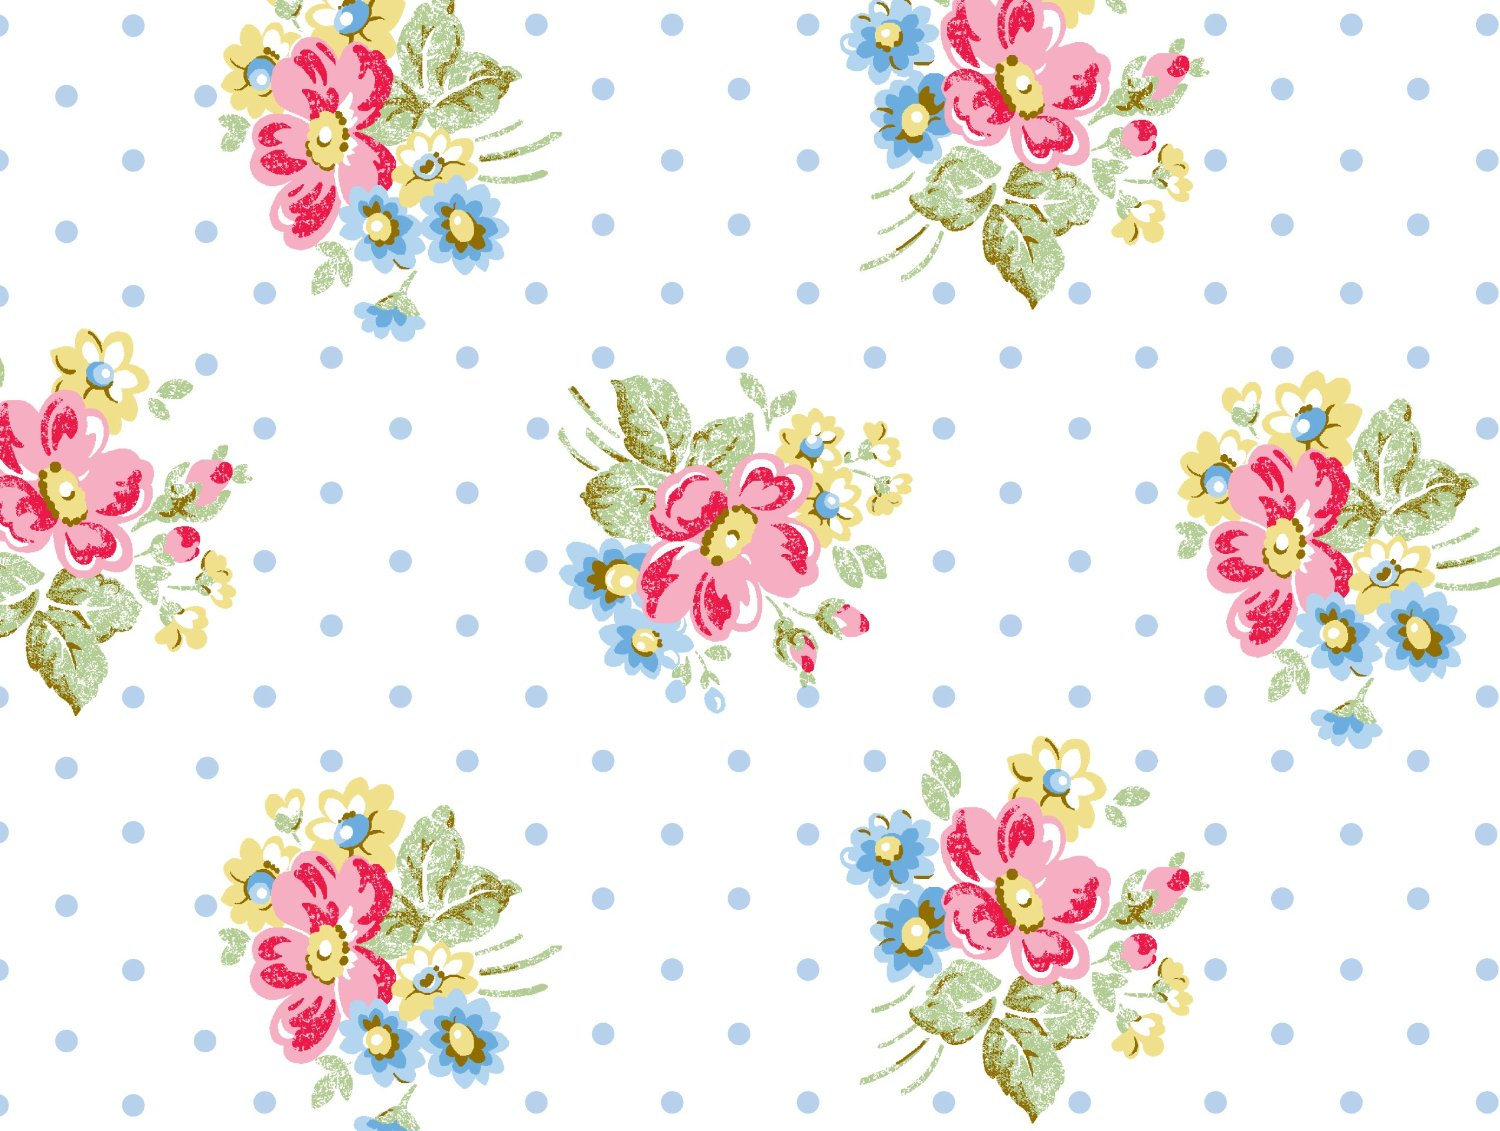 Related Pictures Cath Kidston Wallpaper Hd Wallpaper Car Pictures 1500x1131